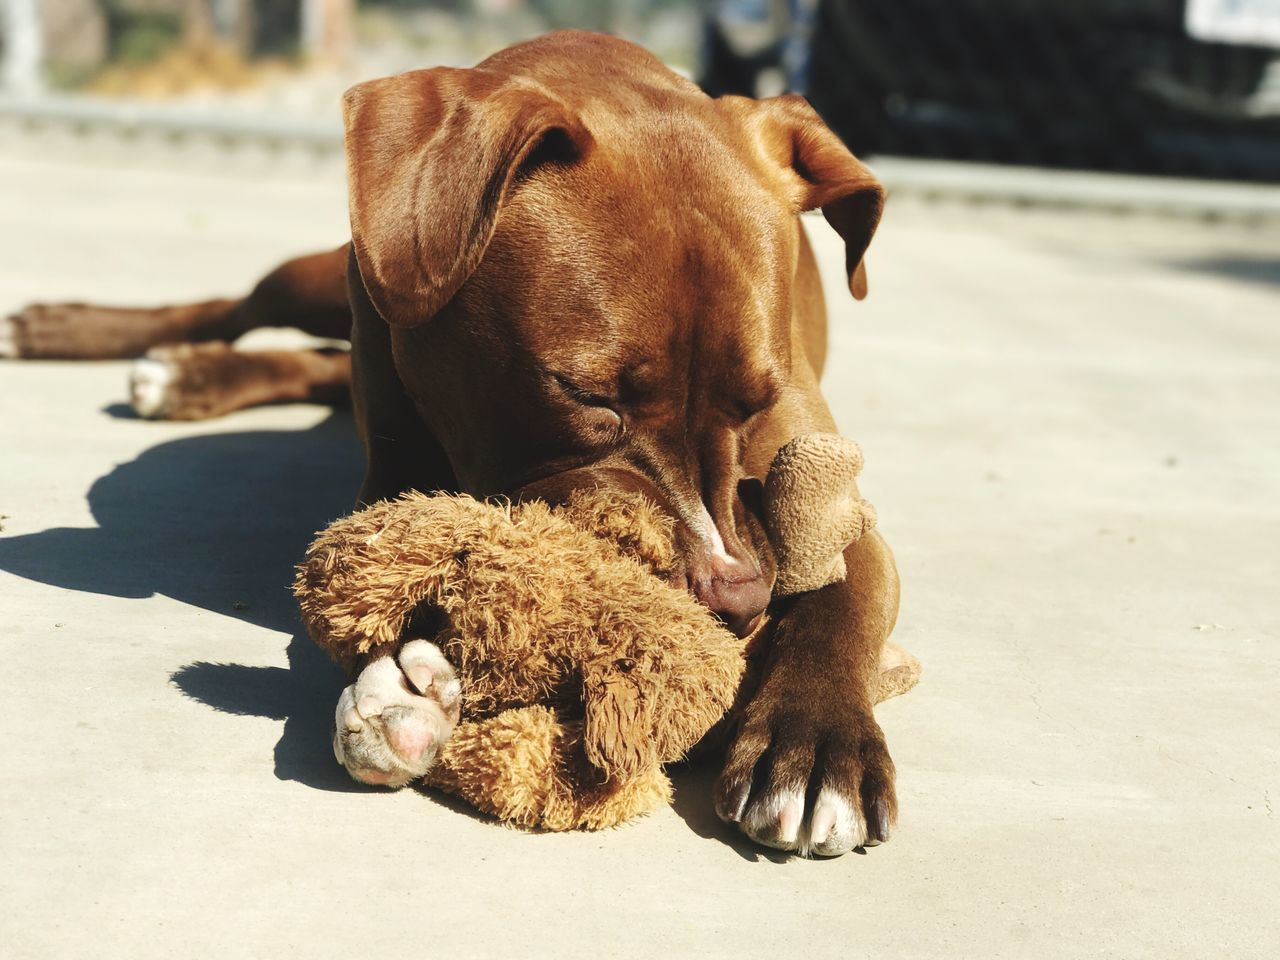 dog, animal themes, teddy bear, mammal, relaxation, stuffed toy, domestic animals, lying down, pets, no people, day, close-up, outdoors